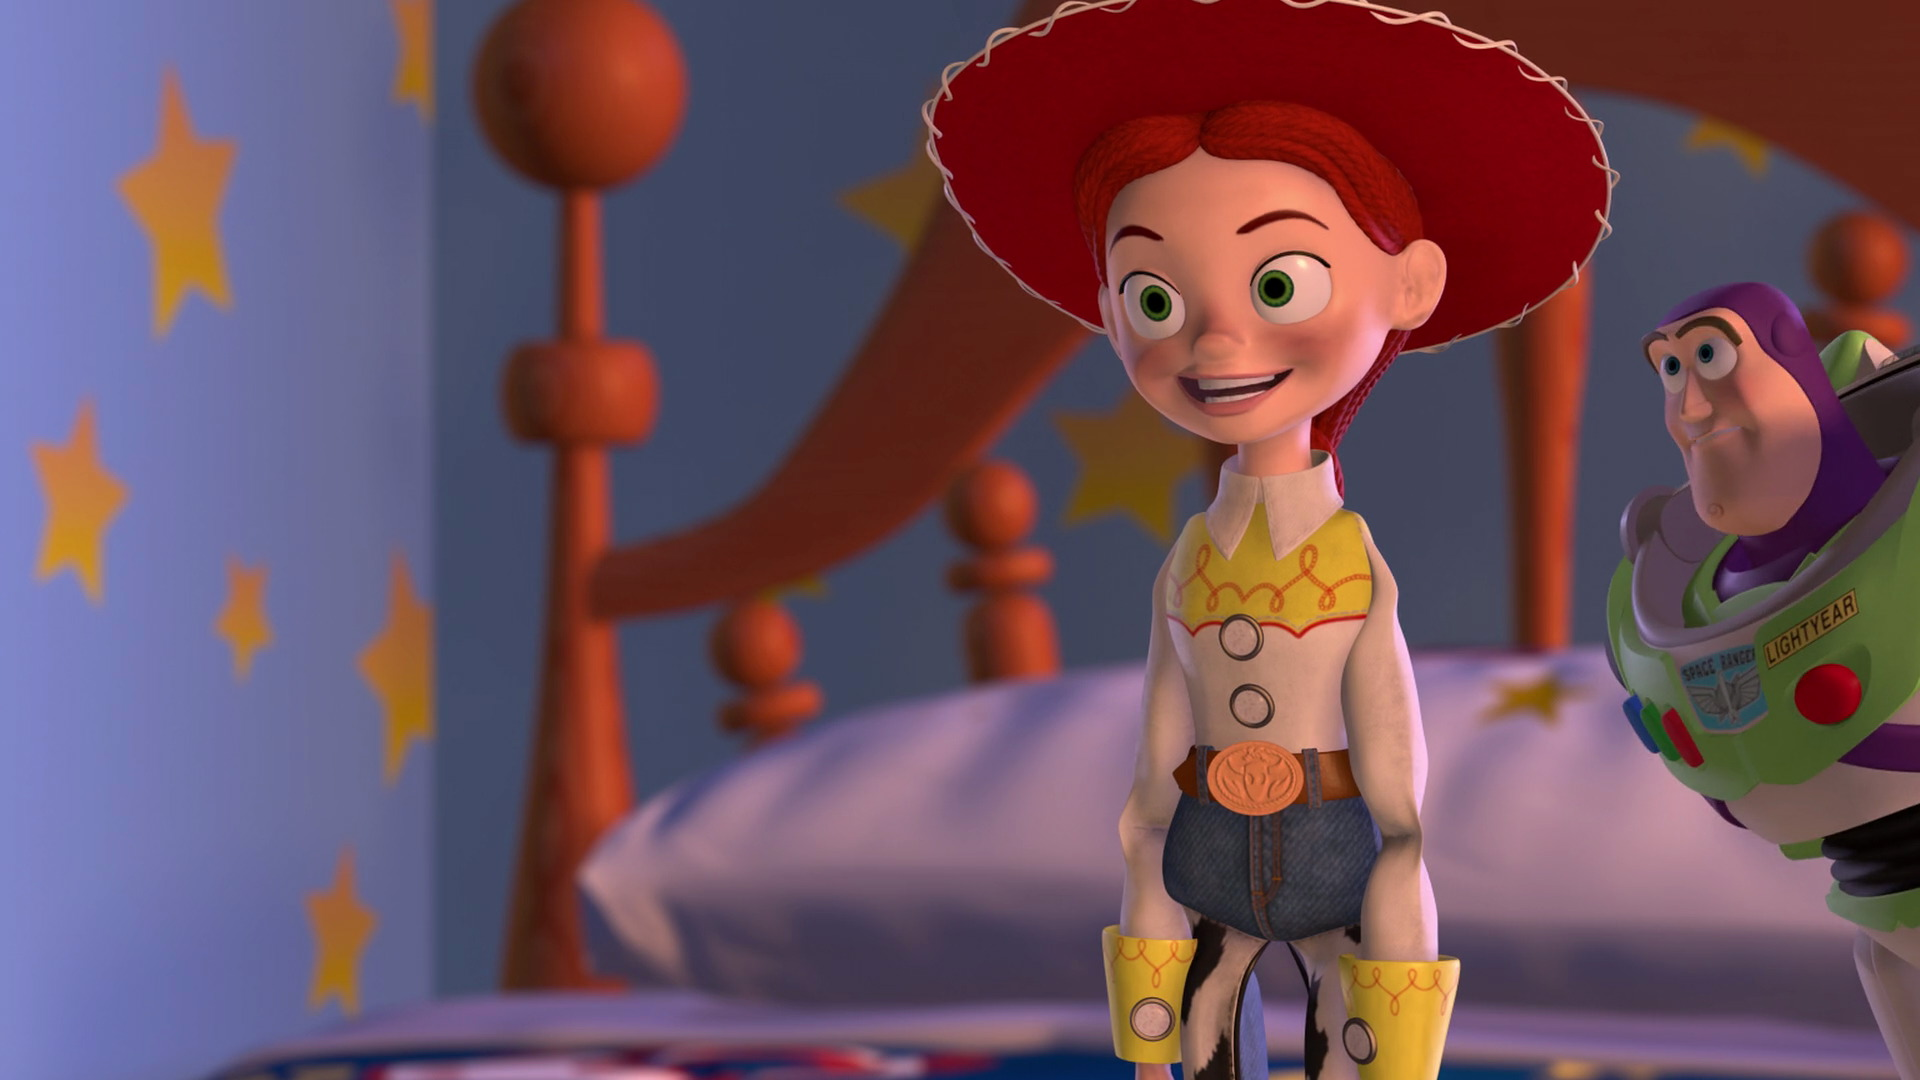 jessie-personnage-toy-story-2-08.jpg